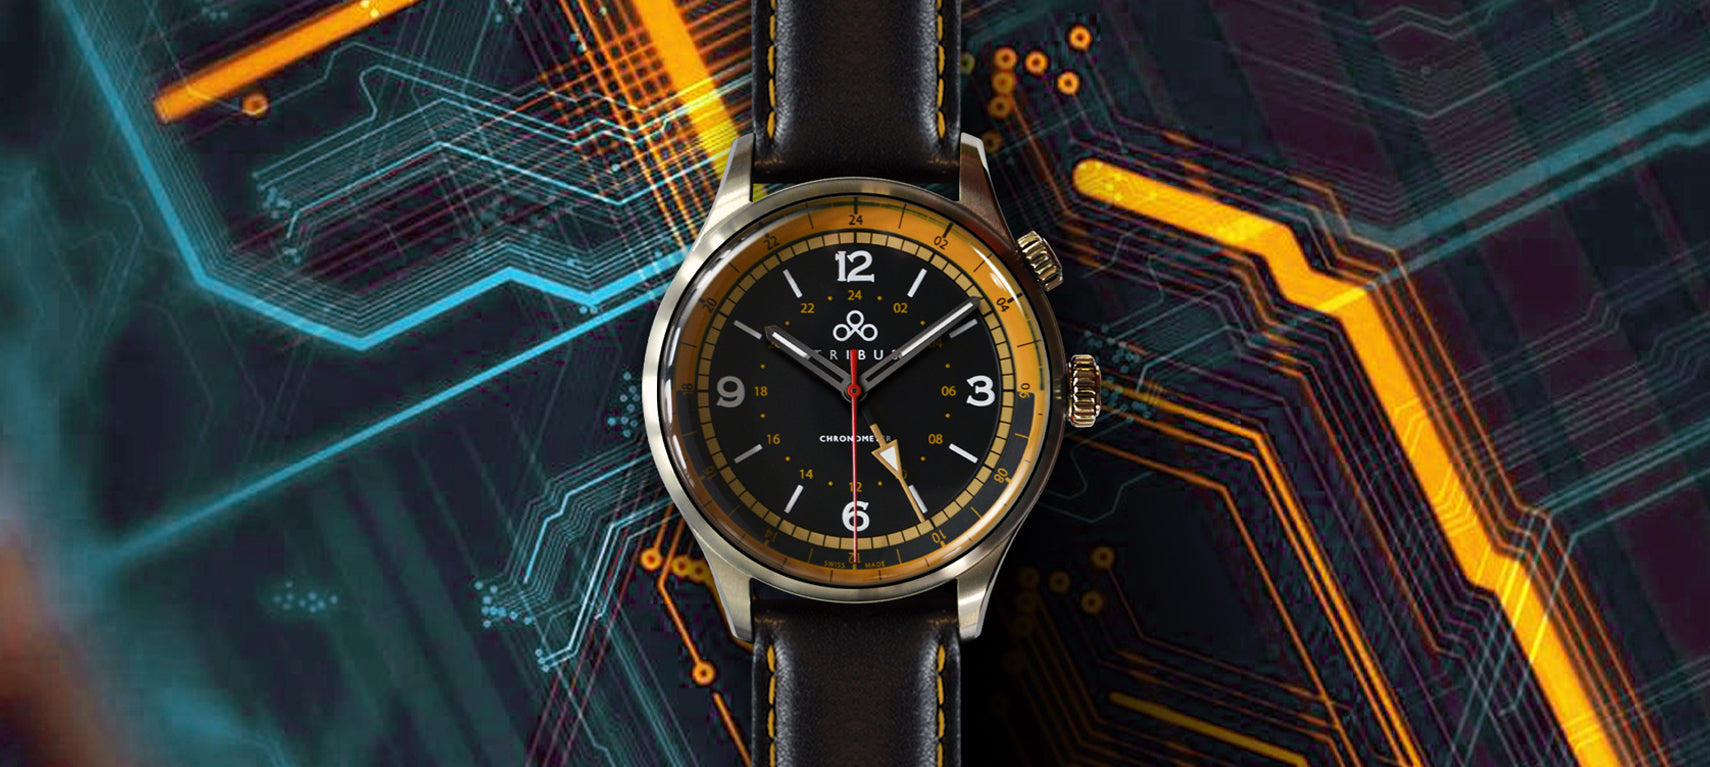 Tribus-Watches-History-Blog-6